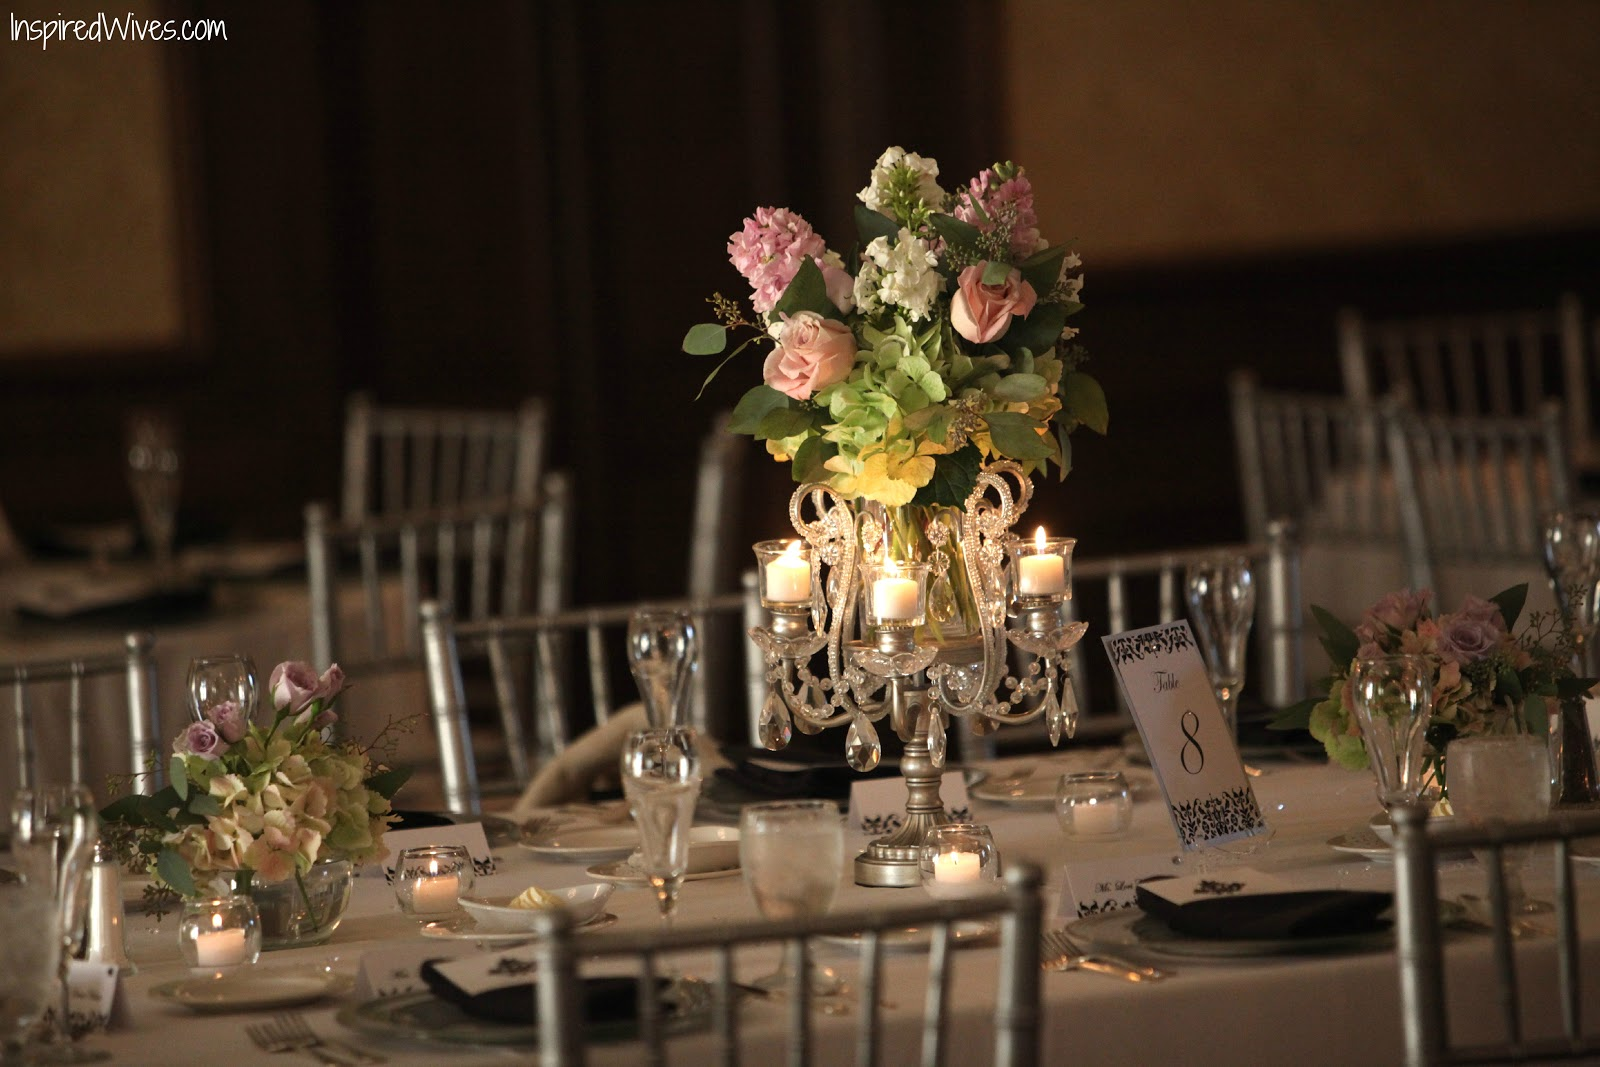 Inspired i dos candelabra wedding centerpieces